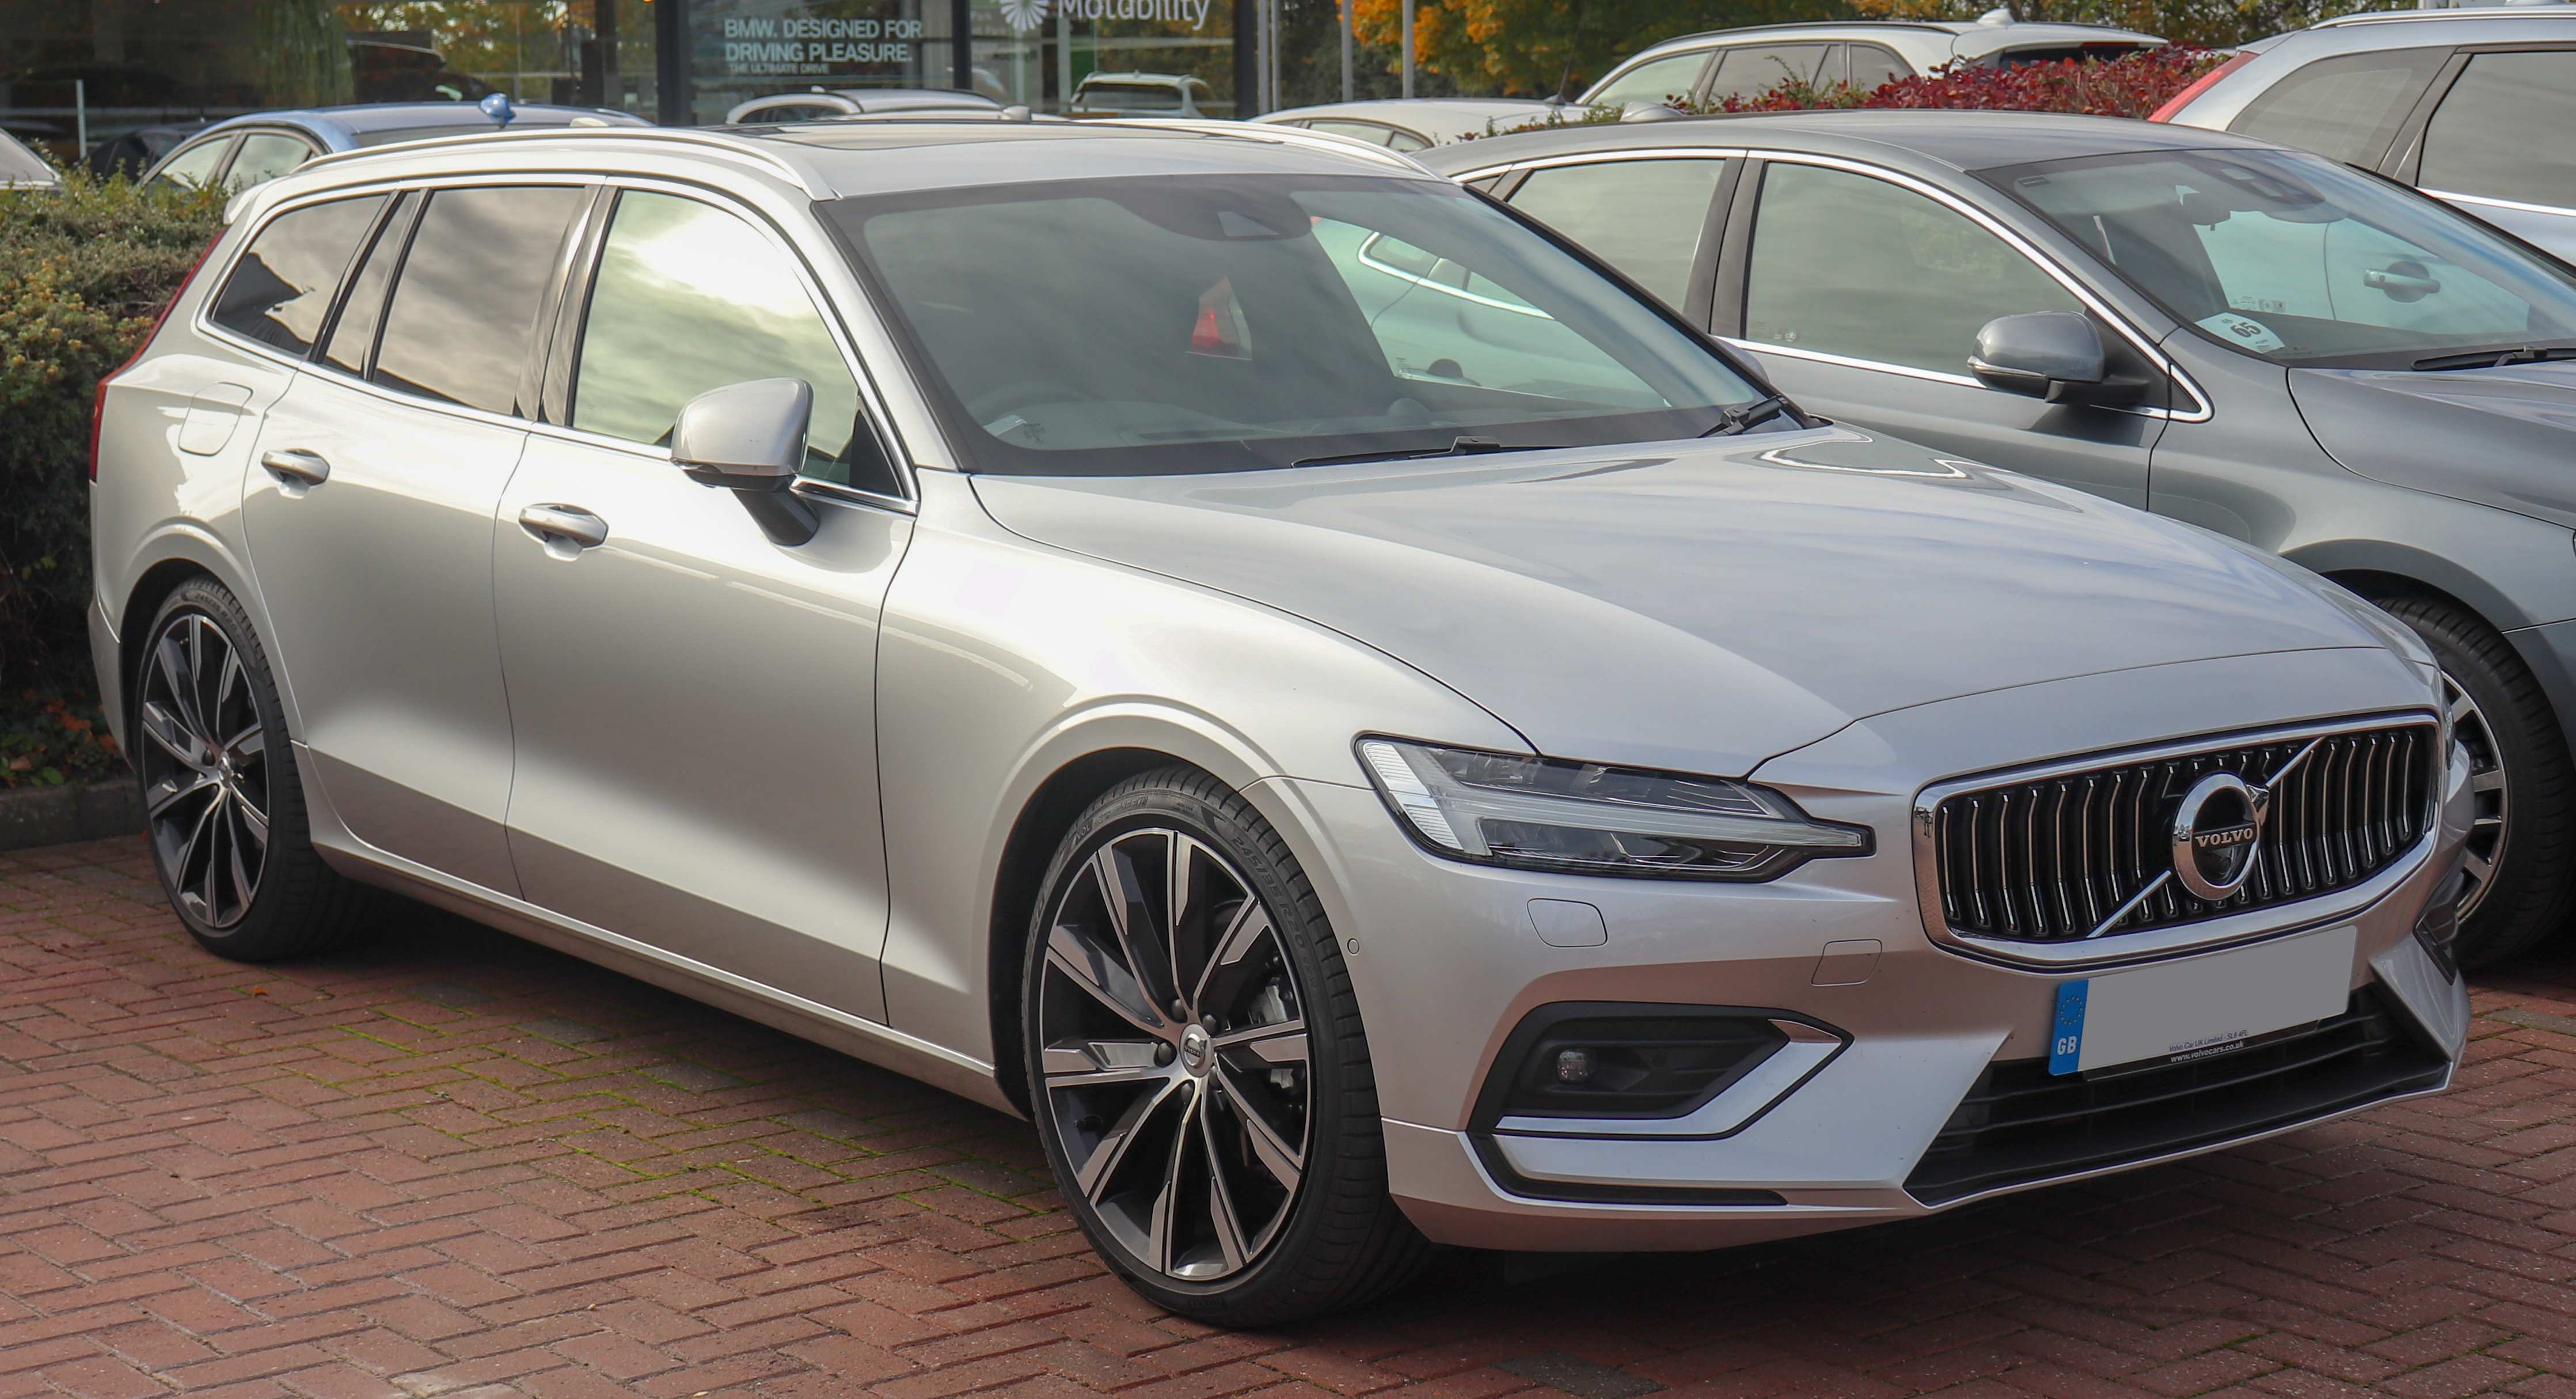 90 New Volvo Diesel 2019 Performance Prices with Volvo Diesel 2019 Performance